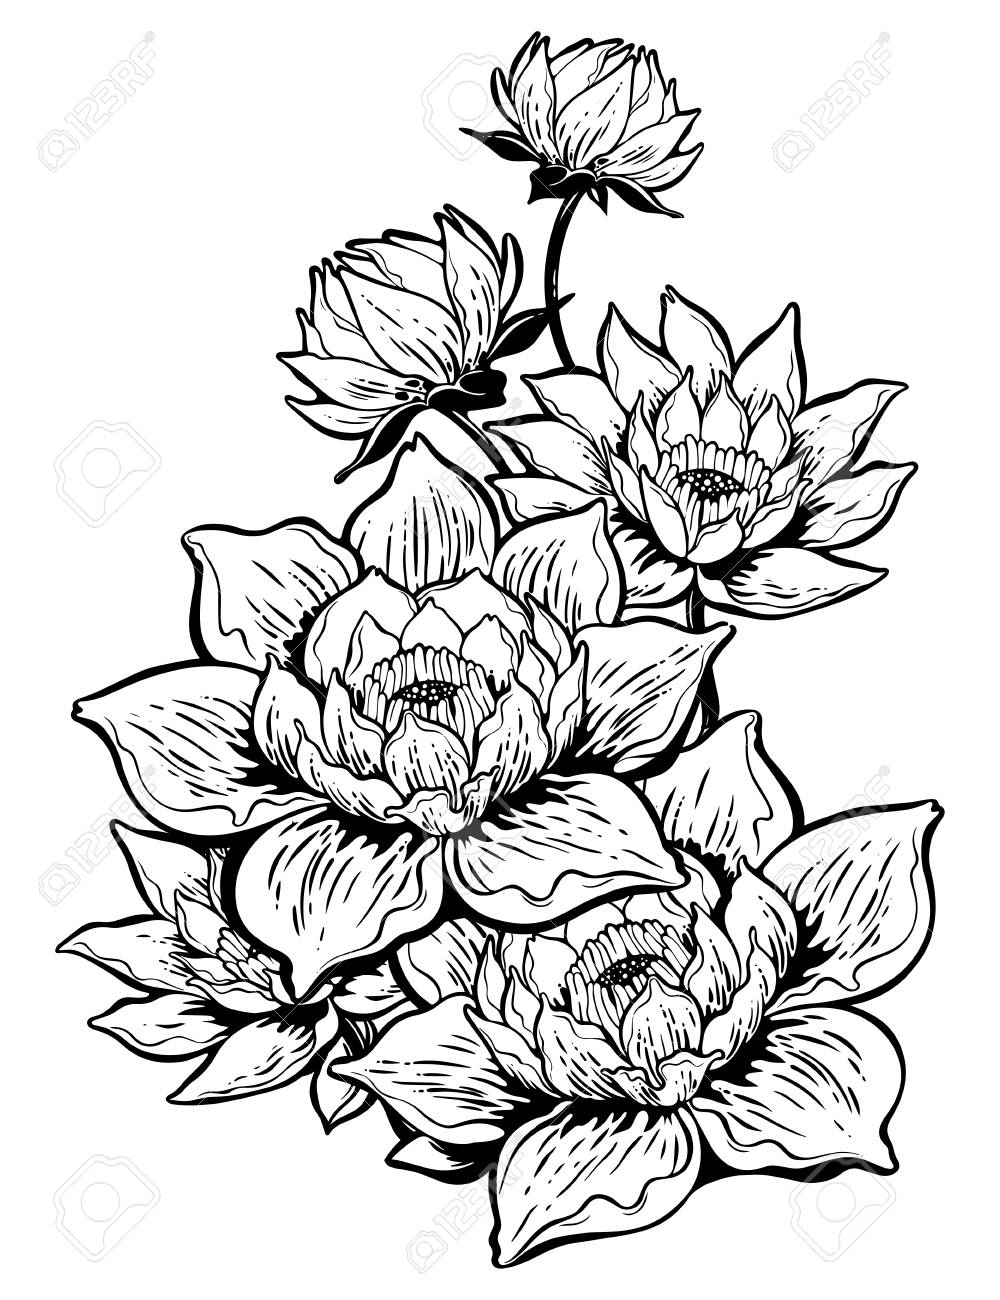 Lotus Lily Water Flower Stems In Bloom Asian Floral Element